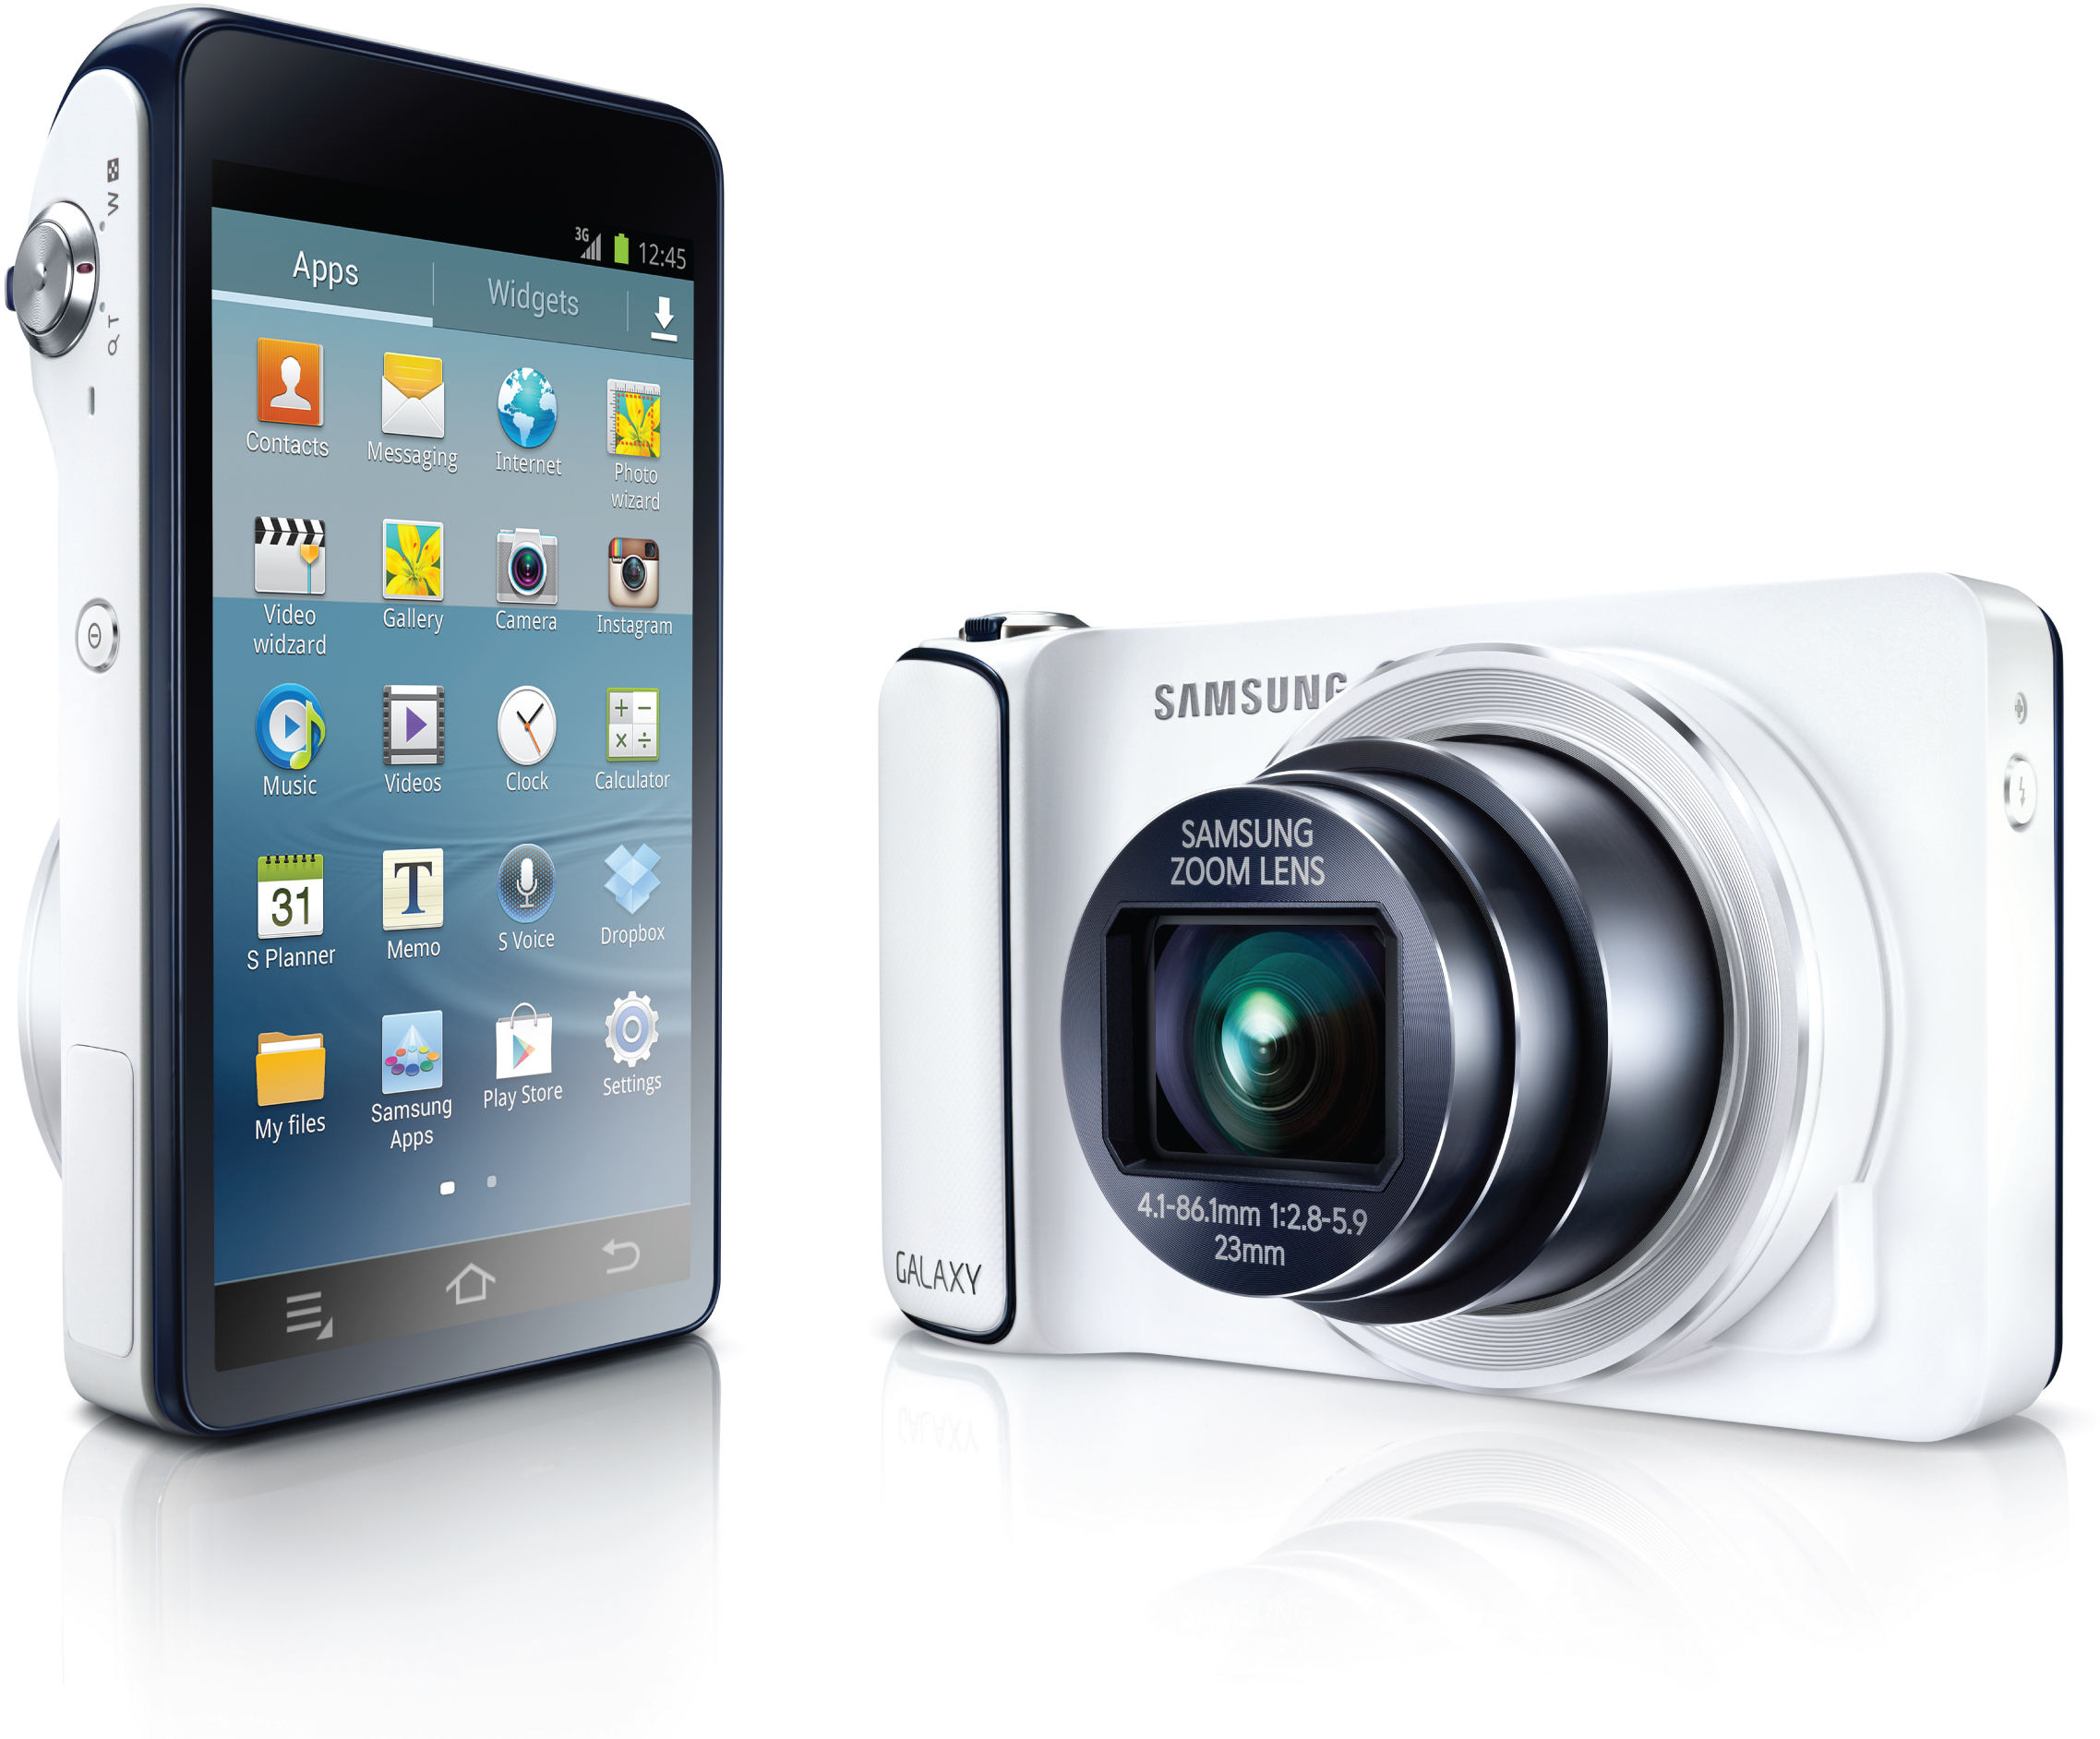 APN Compact Android Samsung Galaxy Camera